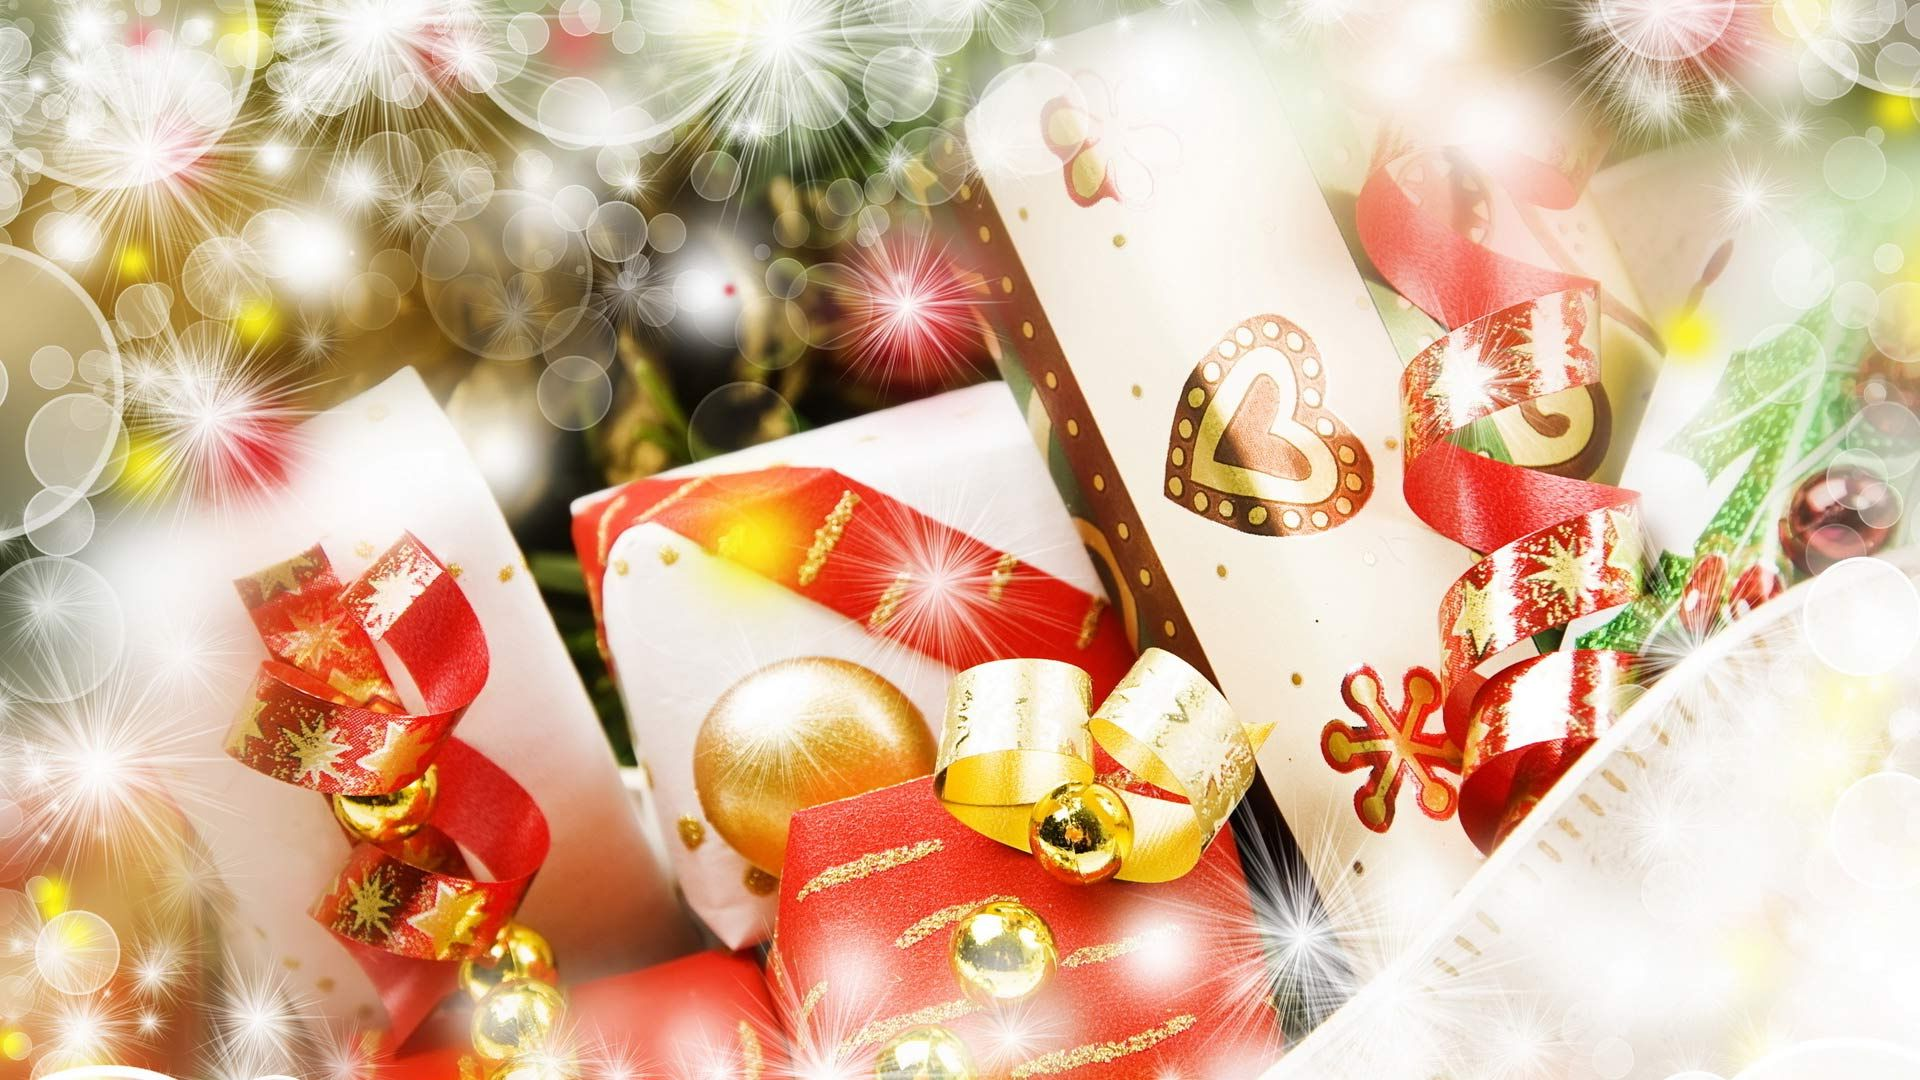 New Year Gifts Free Download Wallpaper